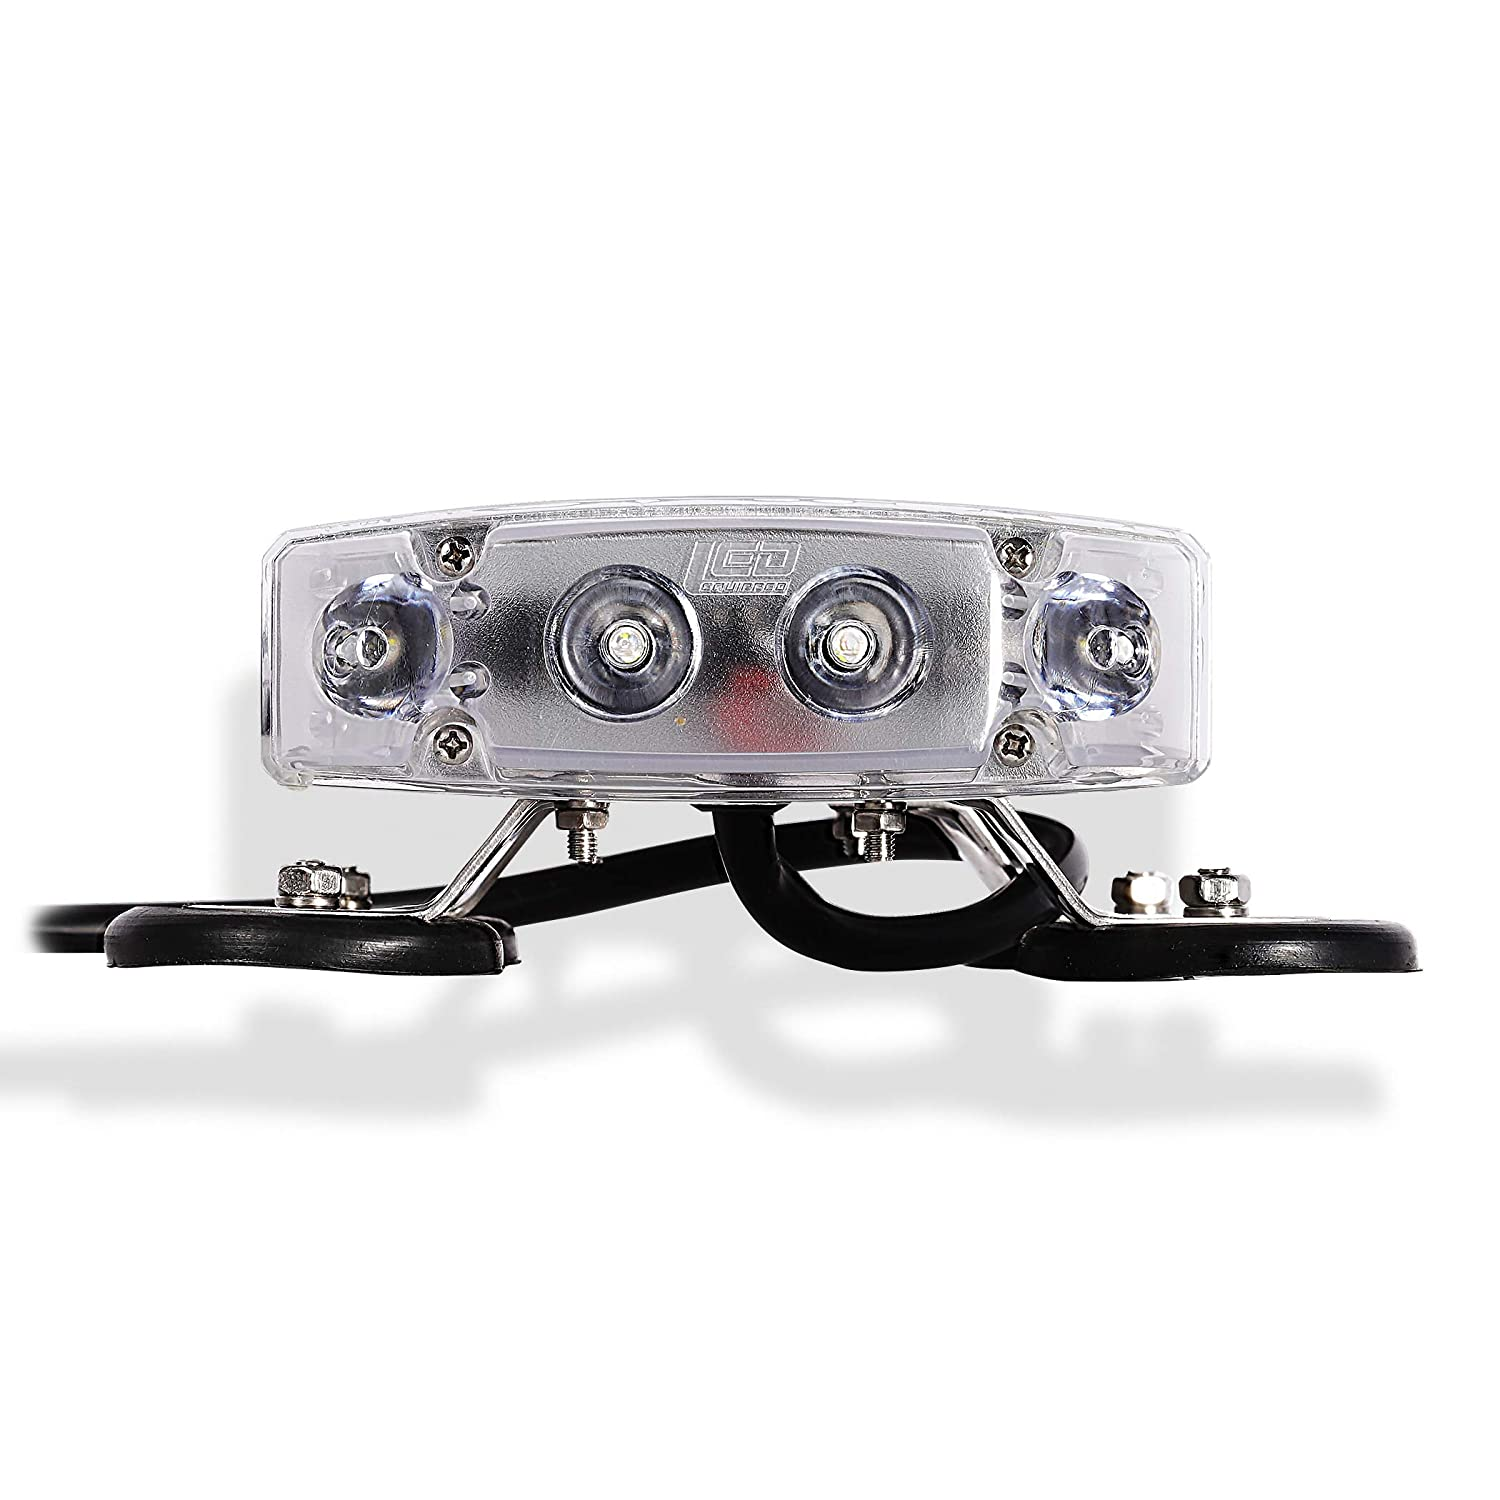 2006 Freightliner CENTURY CLASS DAYCAB Side Roof mount spotlight -Black Driver side WITH install kit 6 inch LED